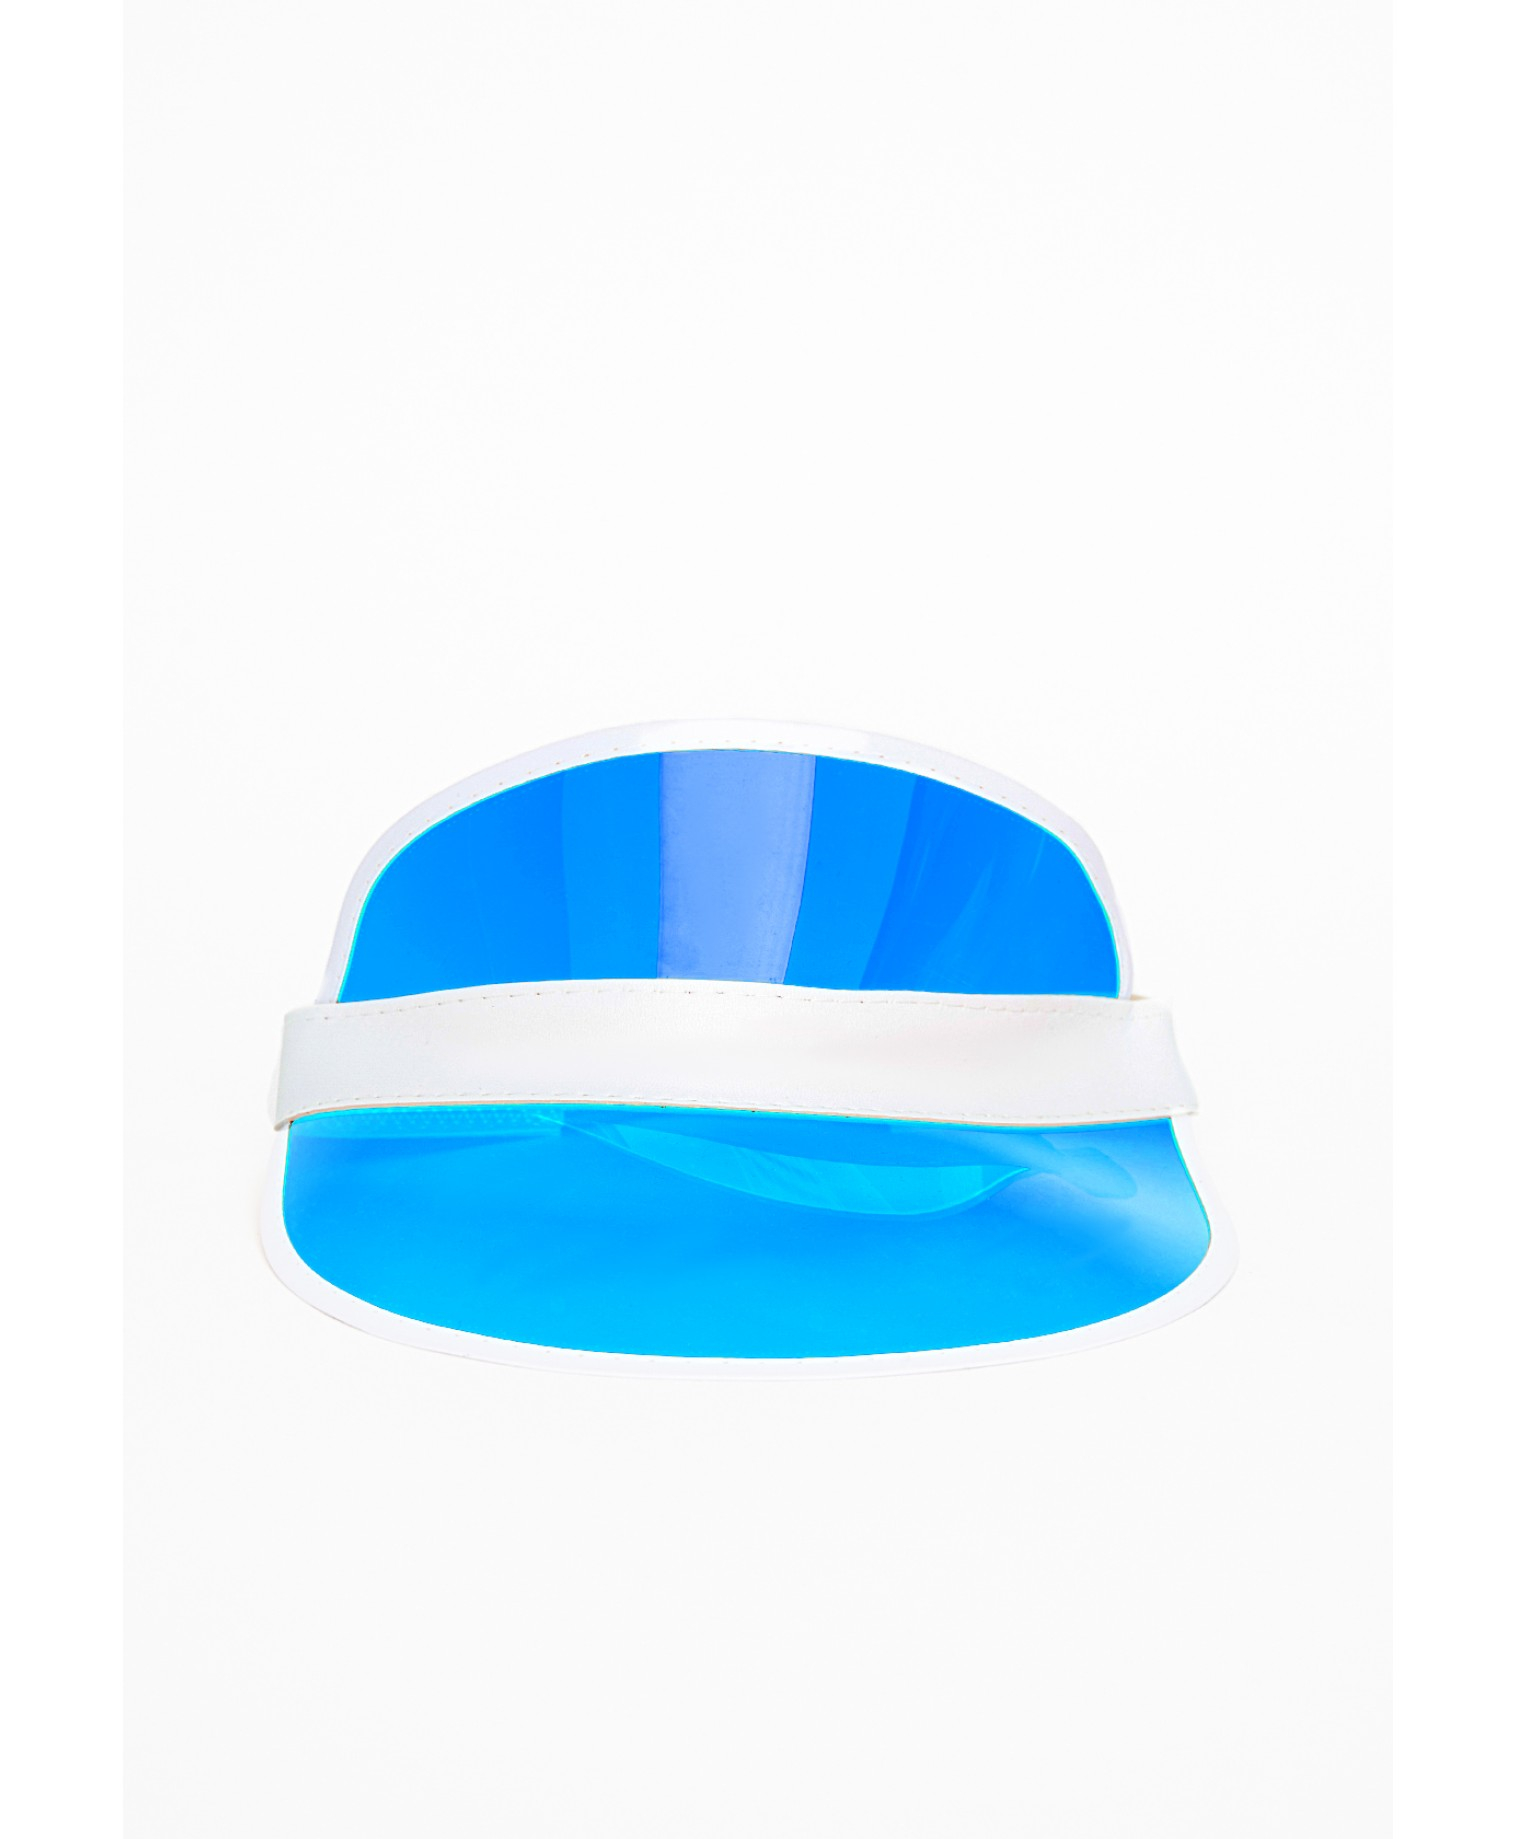 Lyst - Missguided Nazeza Blue Sun Visor - Campaign in Blue 41b5aec28c7